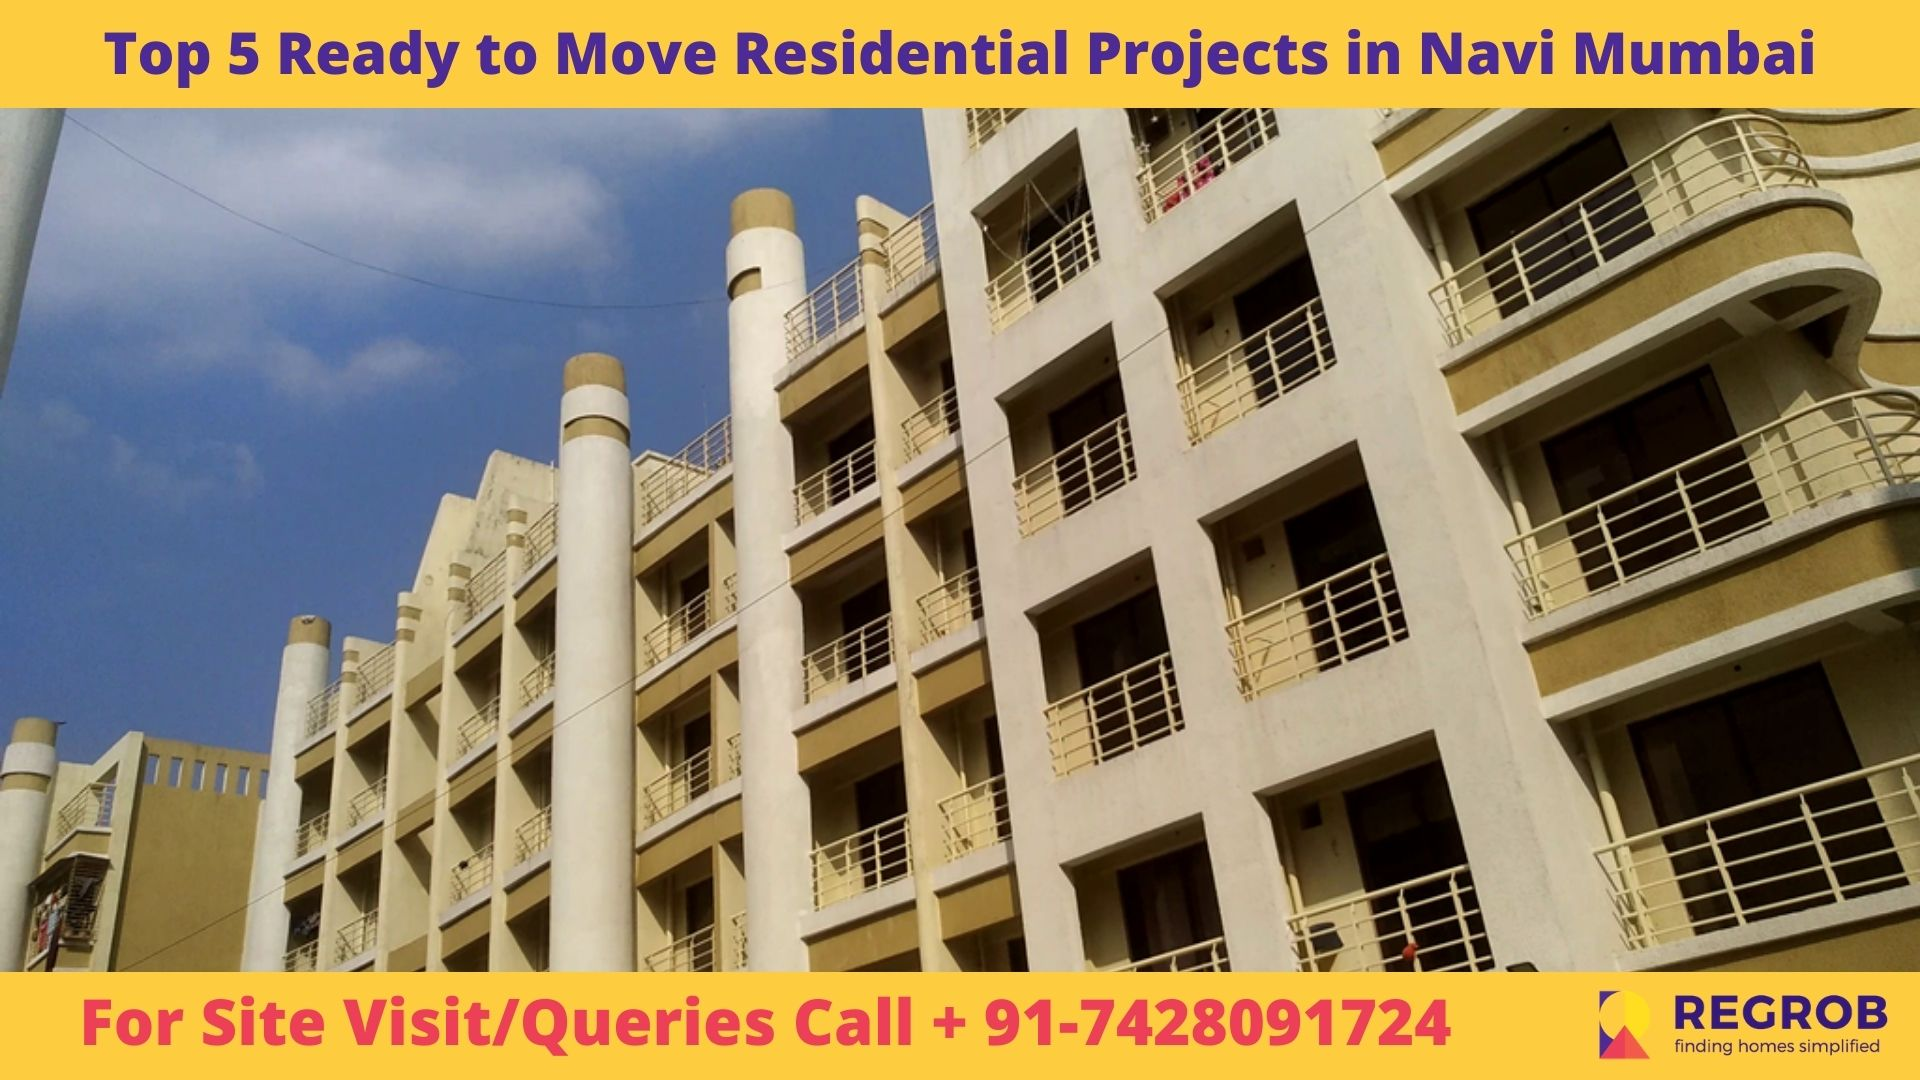 Top 5 Ready to Move Residential Projects in Navi Mumbai